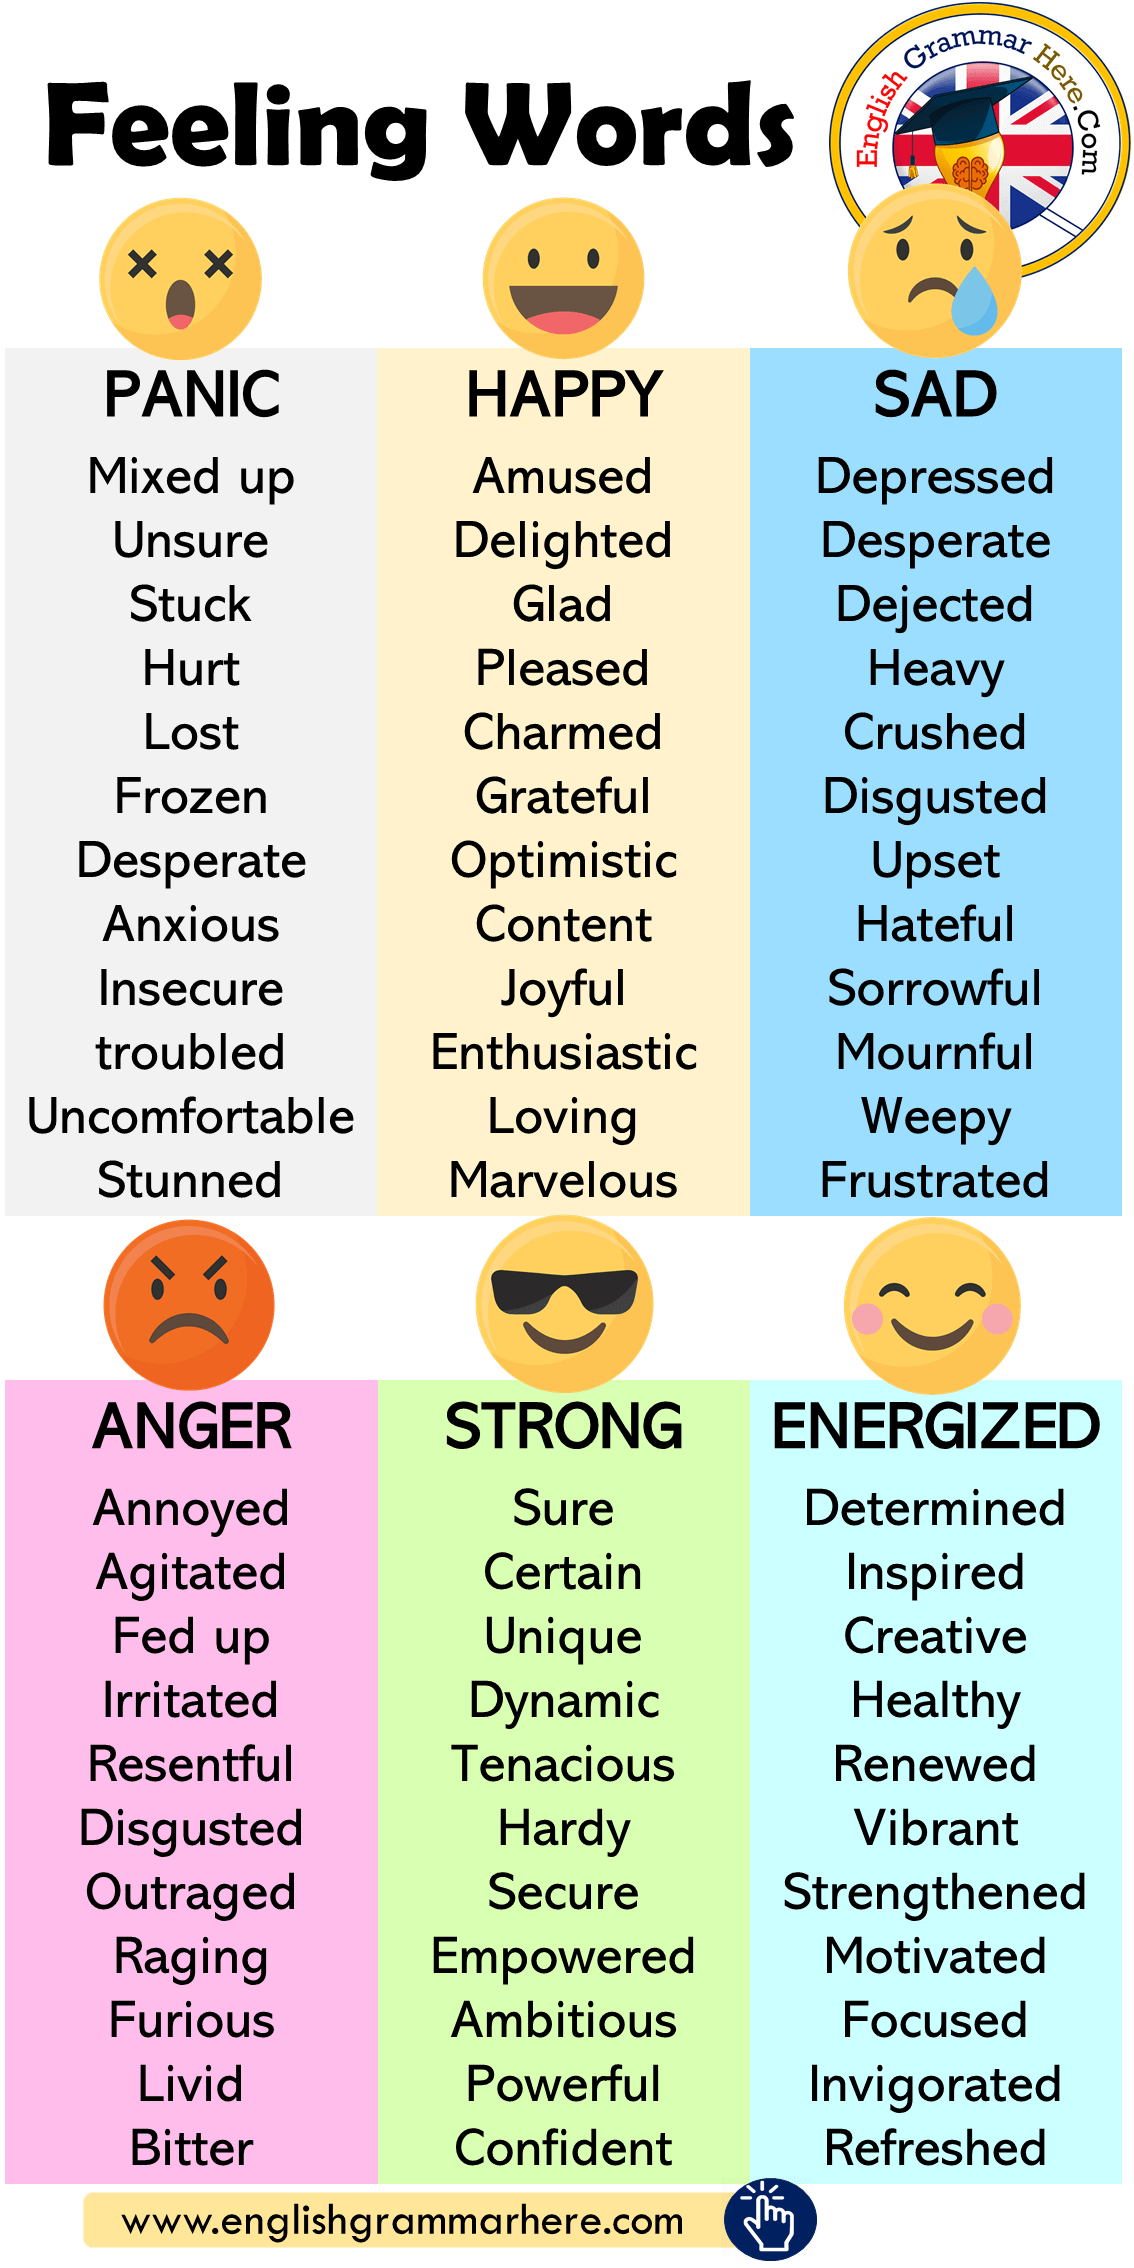 Feeling Words List in English